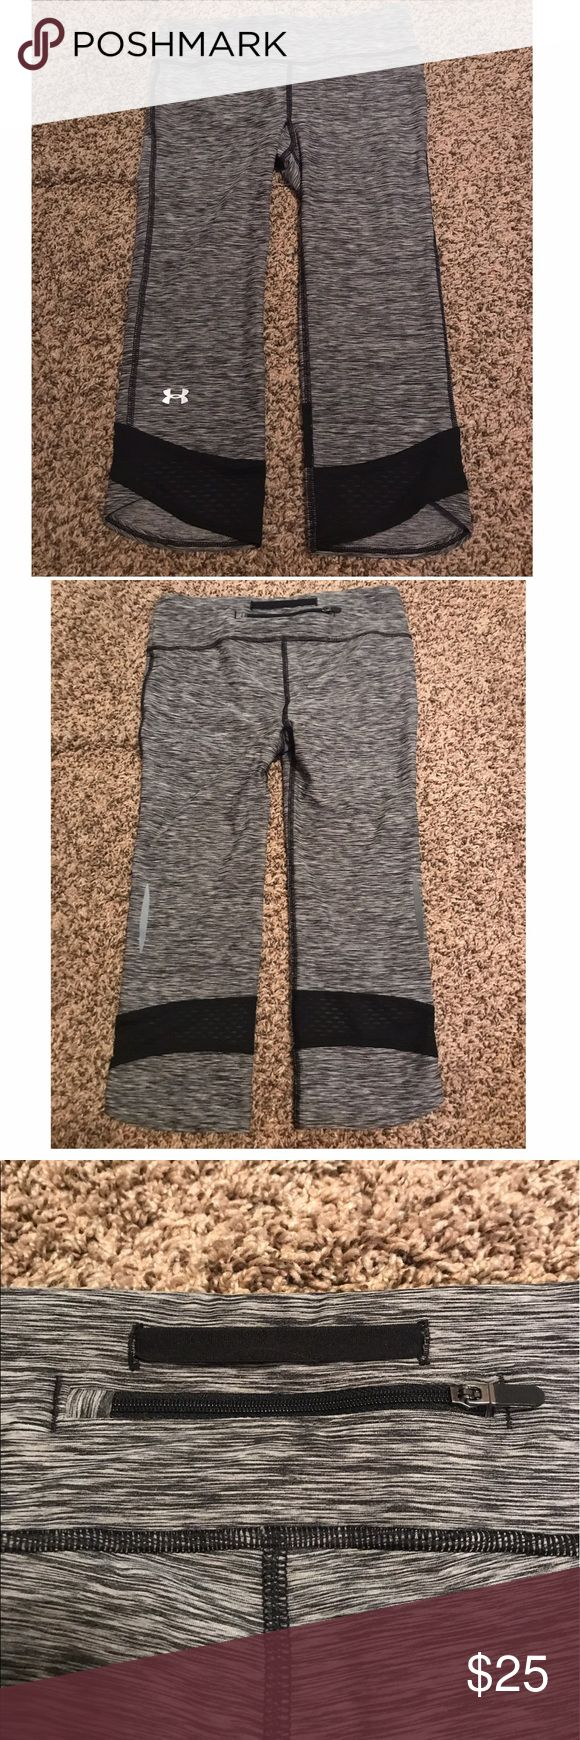 Under Armour leggings Never worn, in brand new condition! Very stretchy and comfy, I just never got around to wearing them other than trying them on. I did cut the tag out but it fits like a size small. Under Armour Pants Leggings